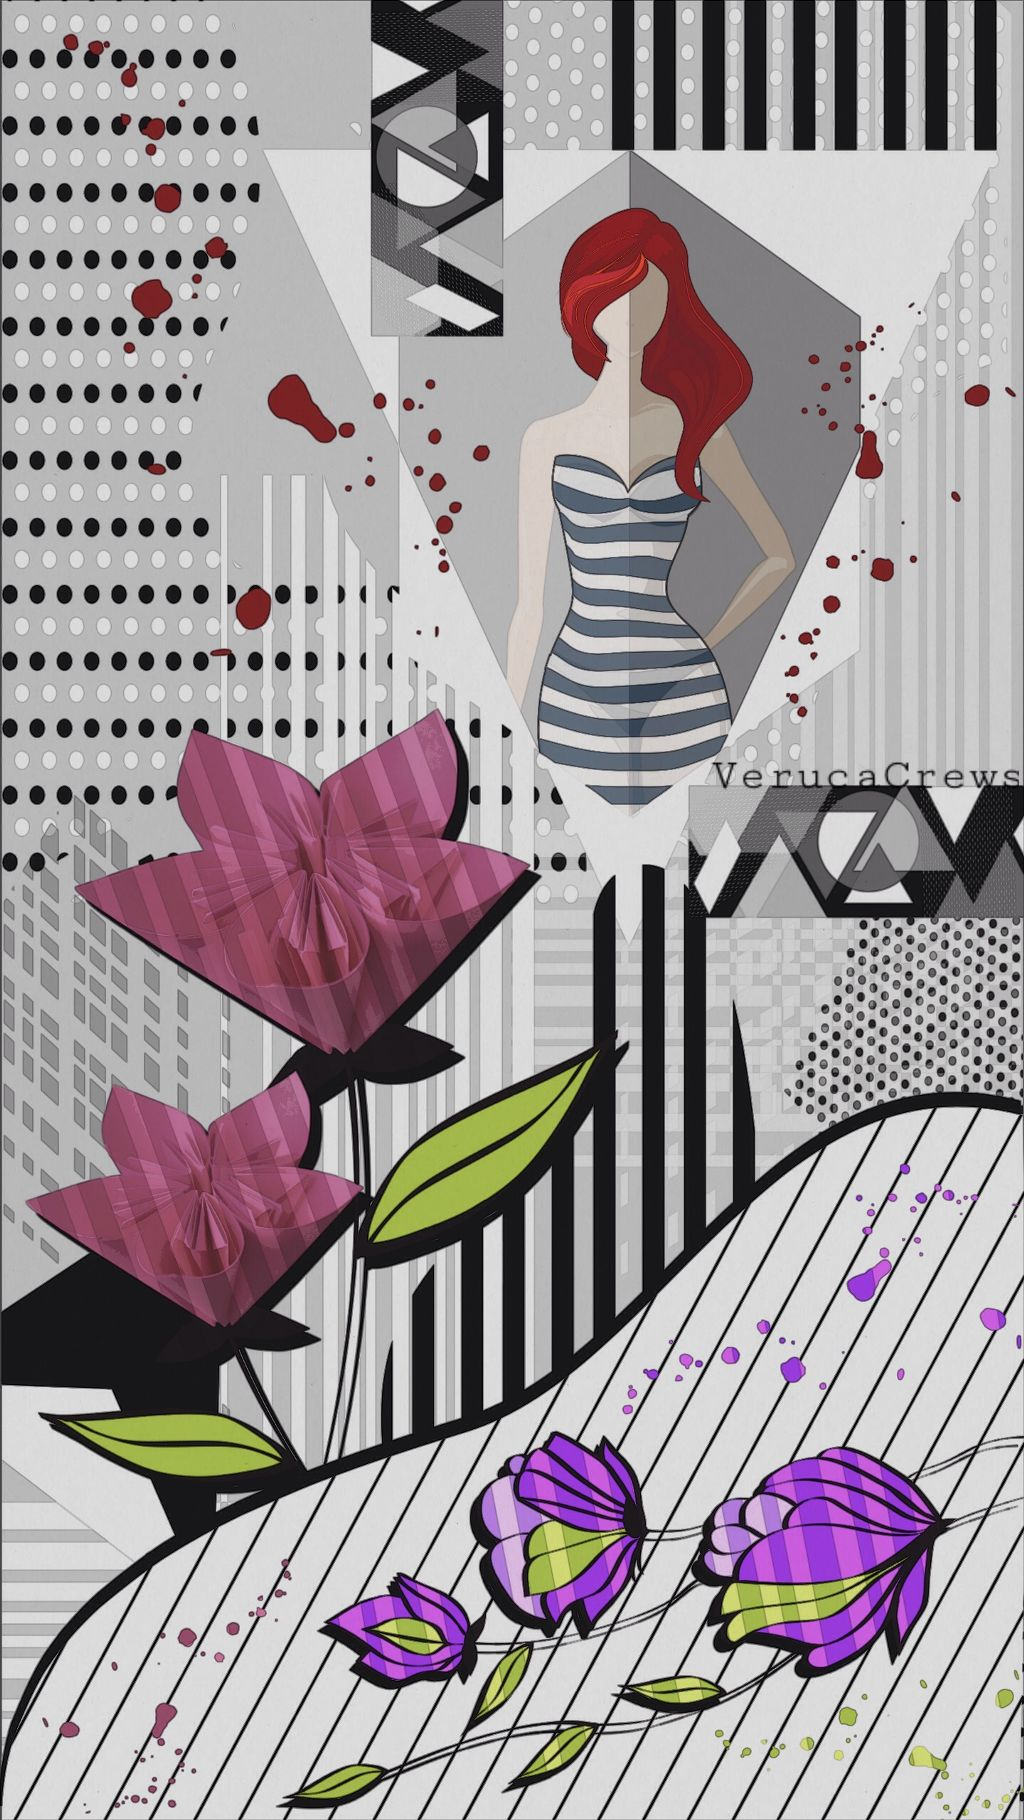 #art #abstract #paperart #drawing #blackandwhite #colorful #collage